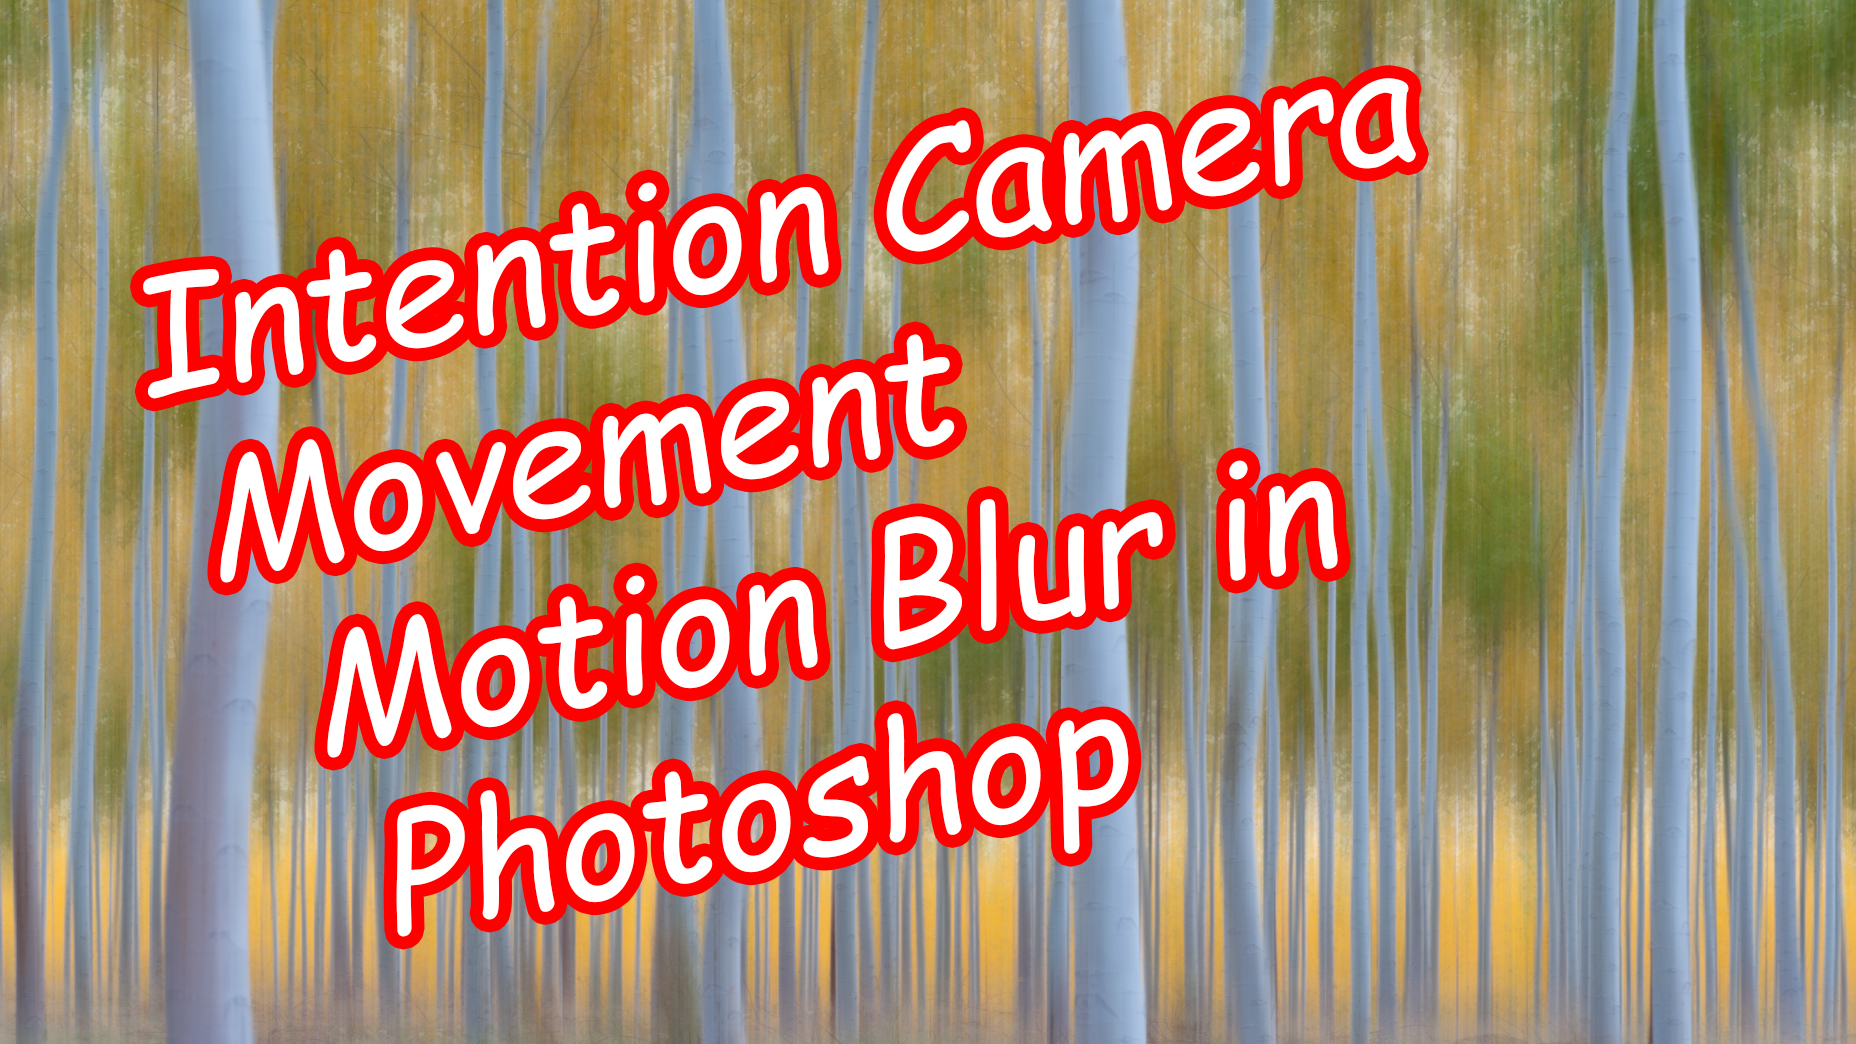 Intentional Camera Movement in Photoshop using The Blur Filter